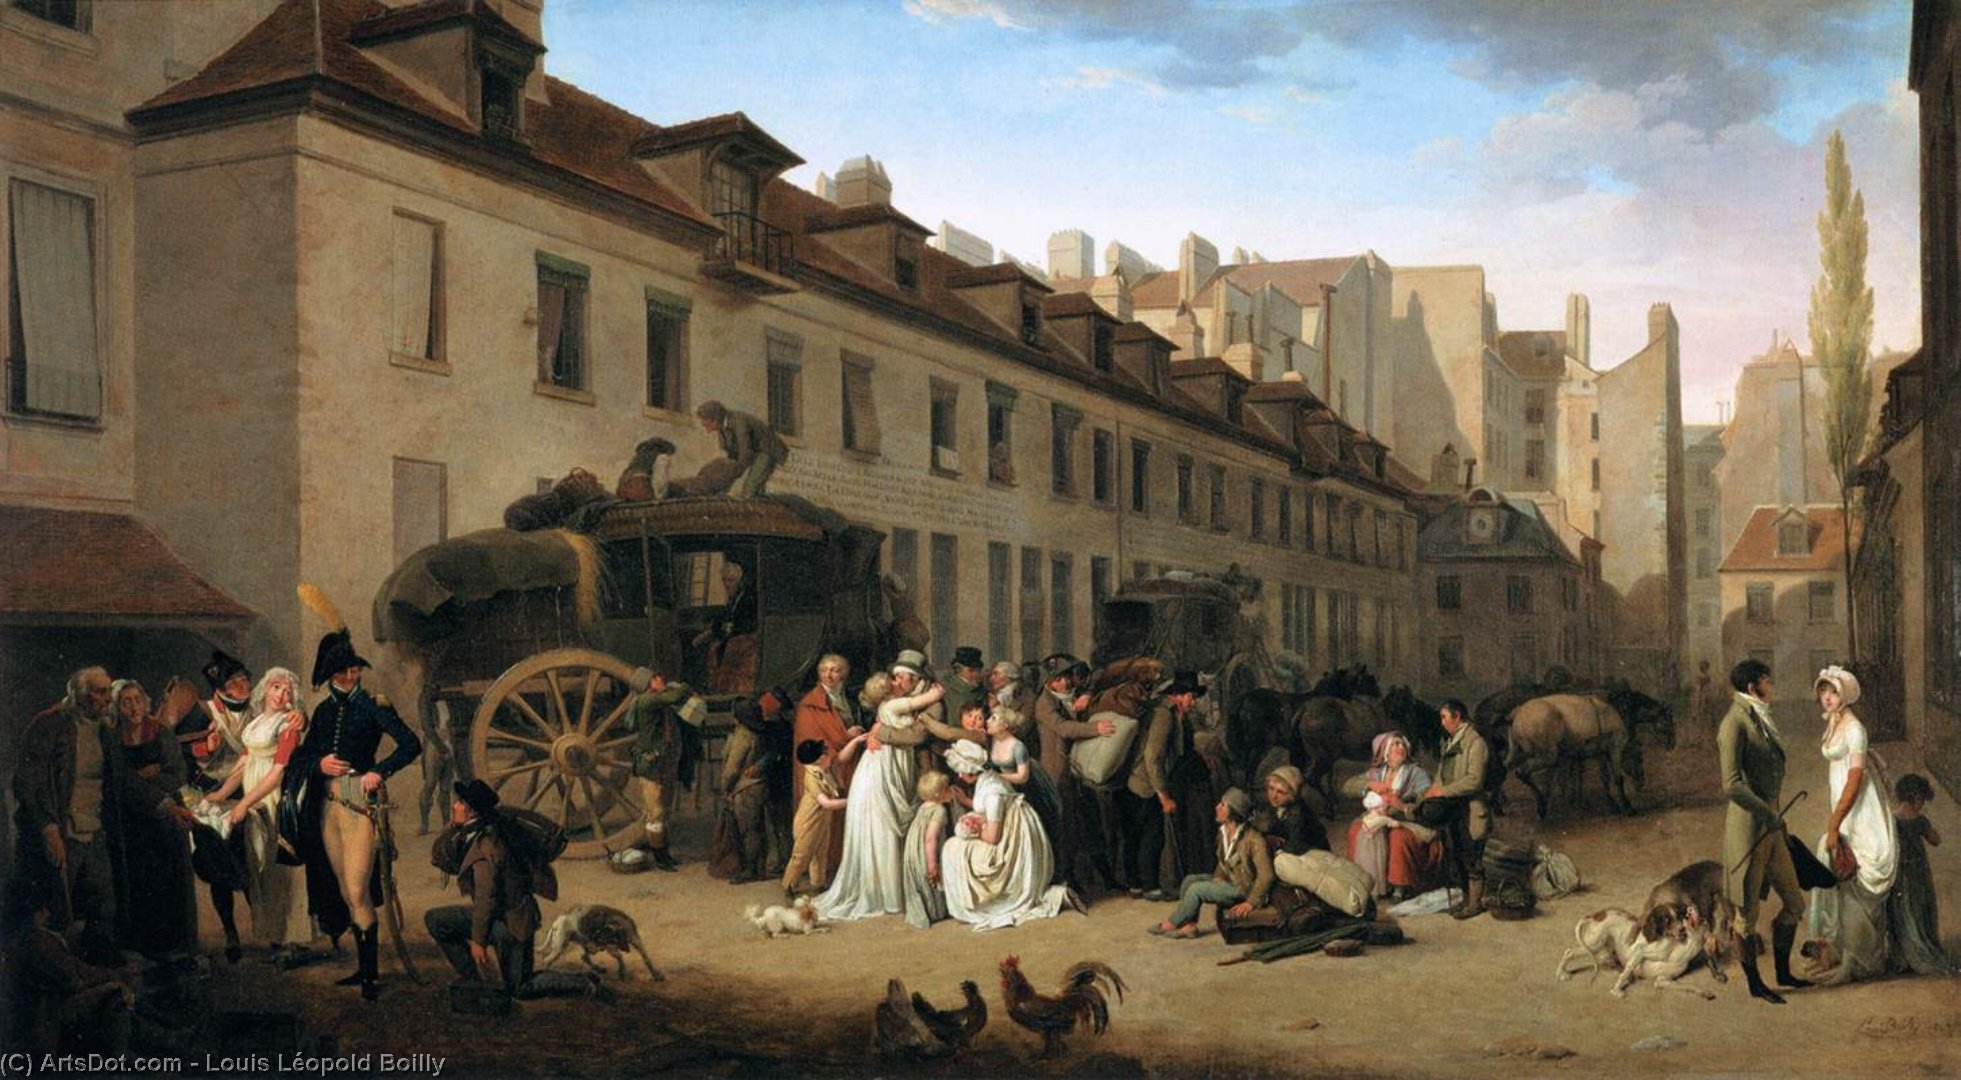 la llegada de un Stage-coach en el patio de los Messageries, óleo sobre lienzo de Louis Léopold Boilly (1761-1845, France)